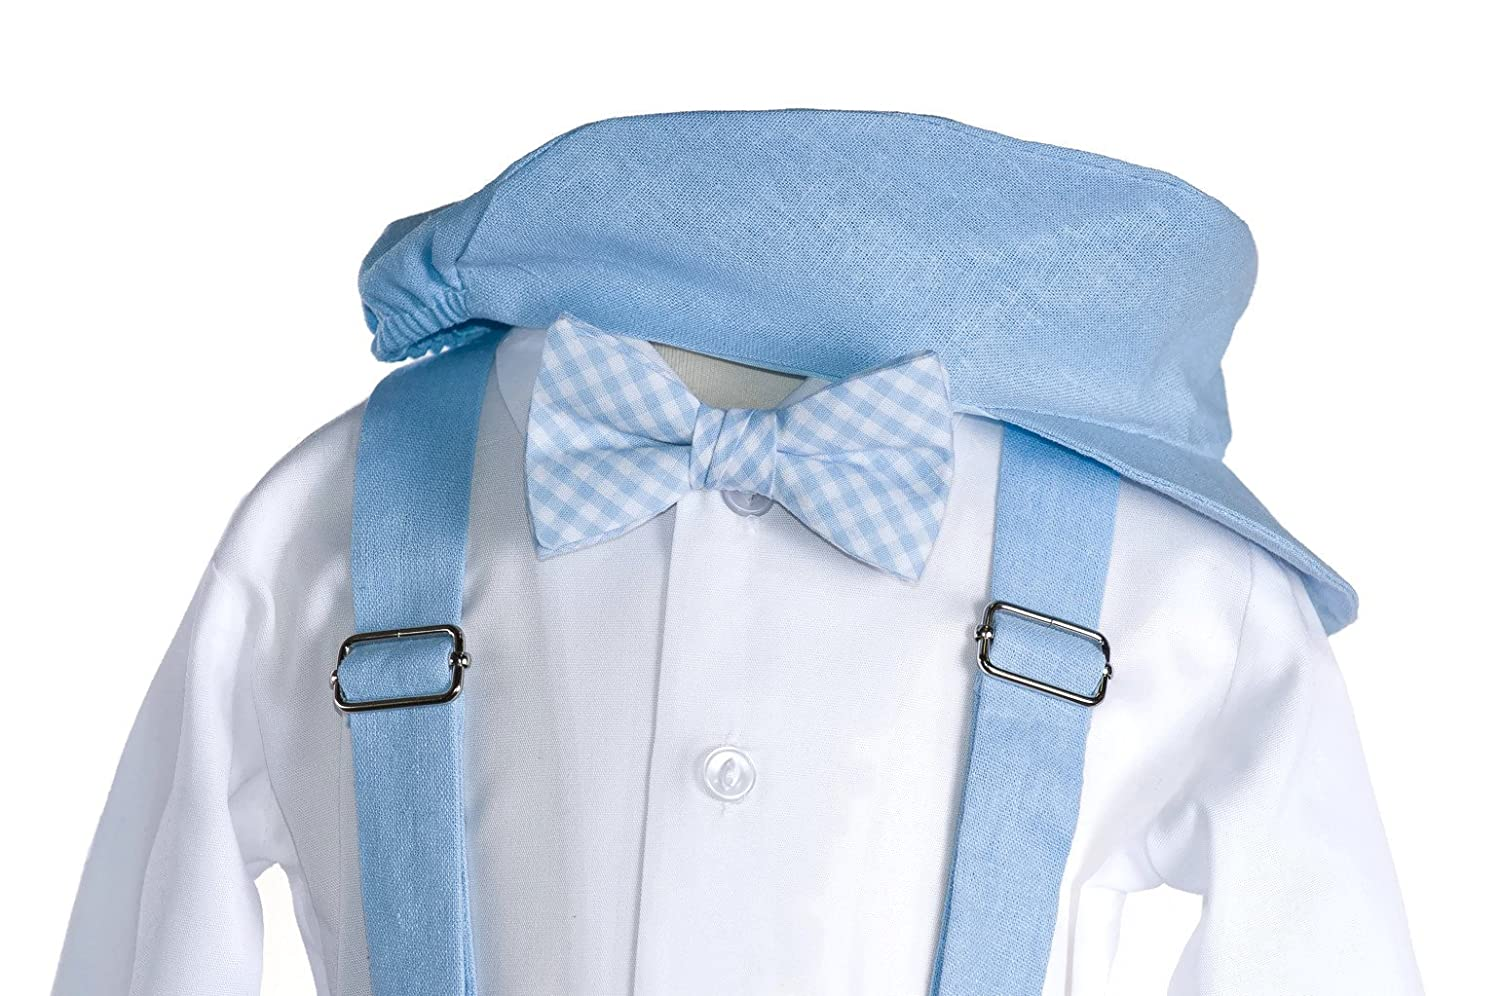 Boys Blue Linen Knicker Outfit with Gingham Bow Tie Baby and Toddlers